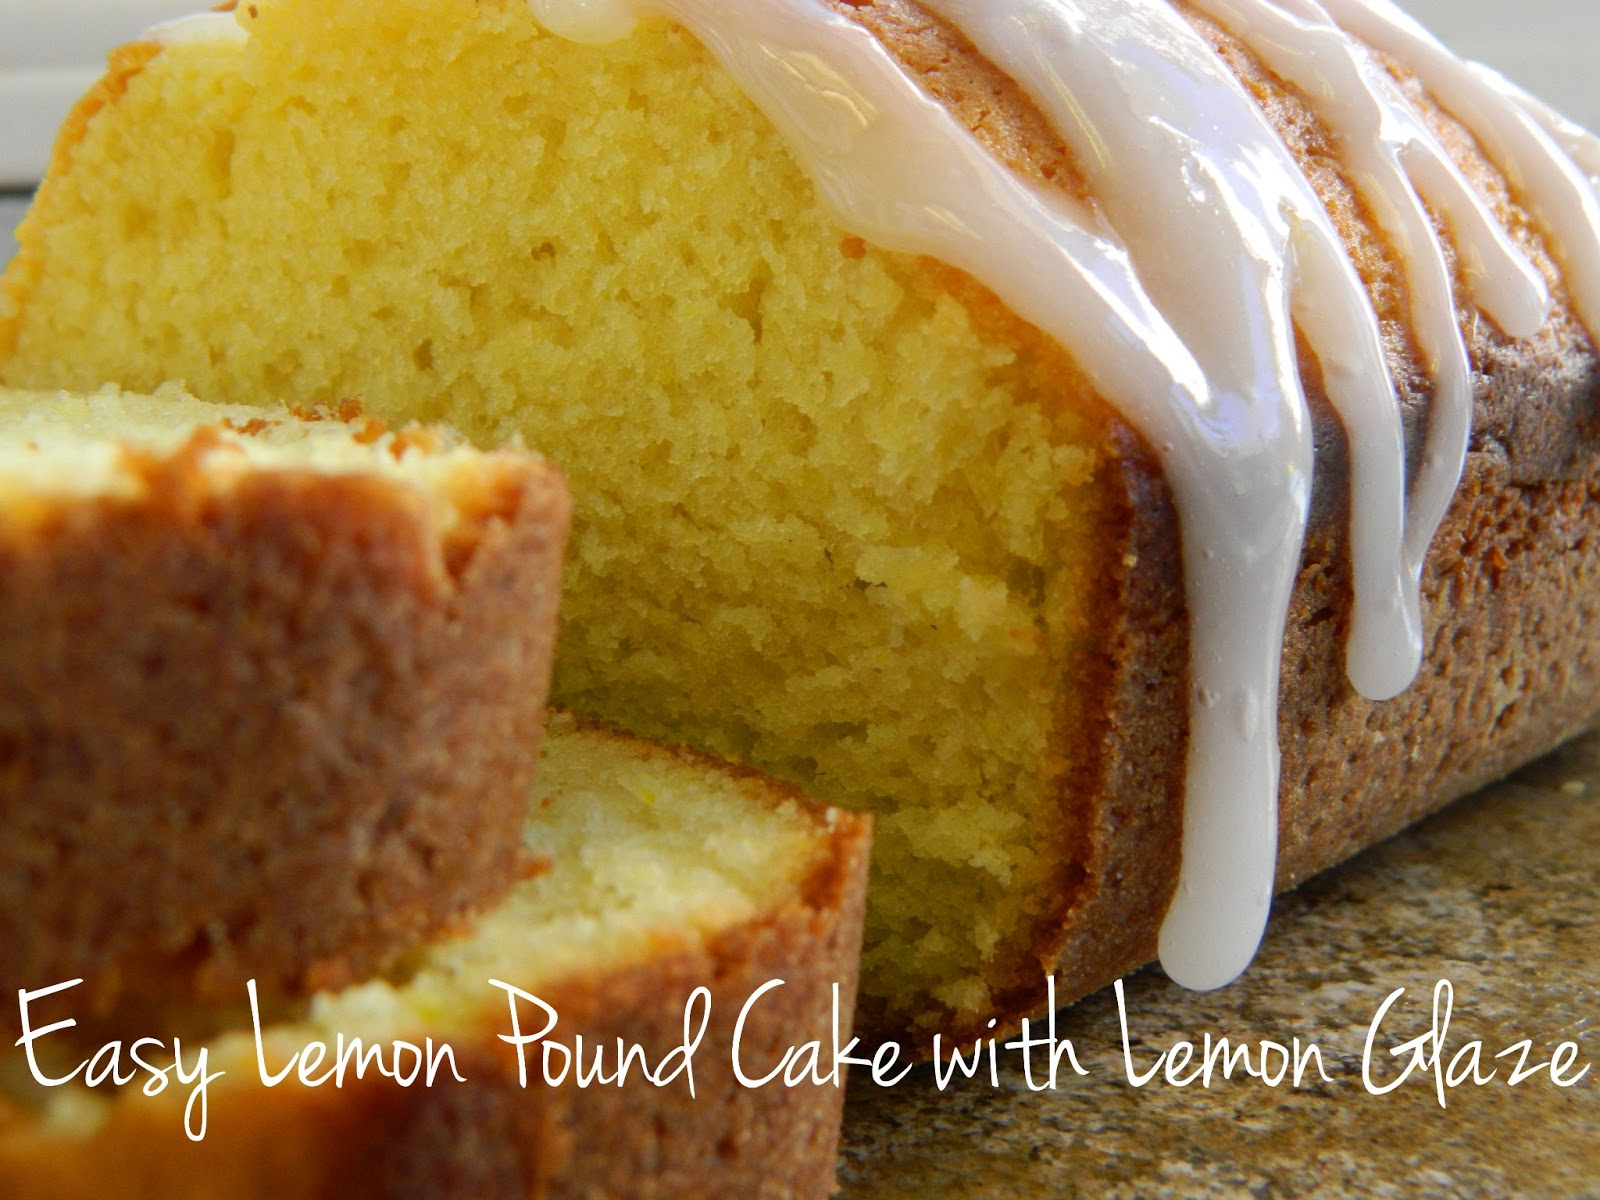 Lemon Glaze For Pound Cake Using Lemon Extract